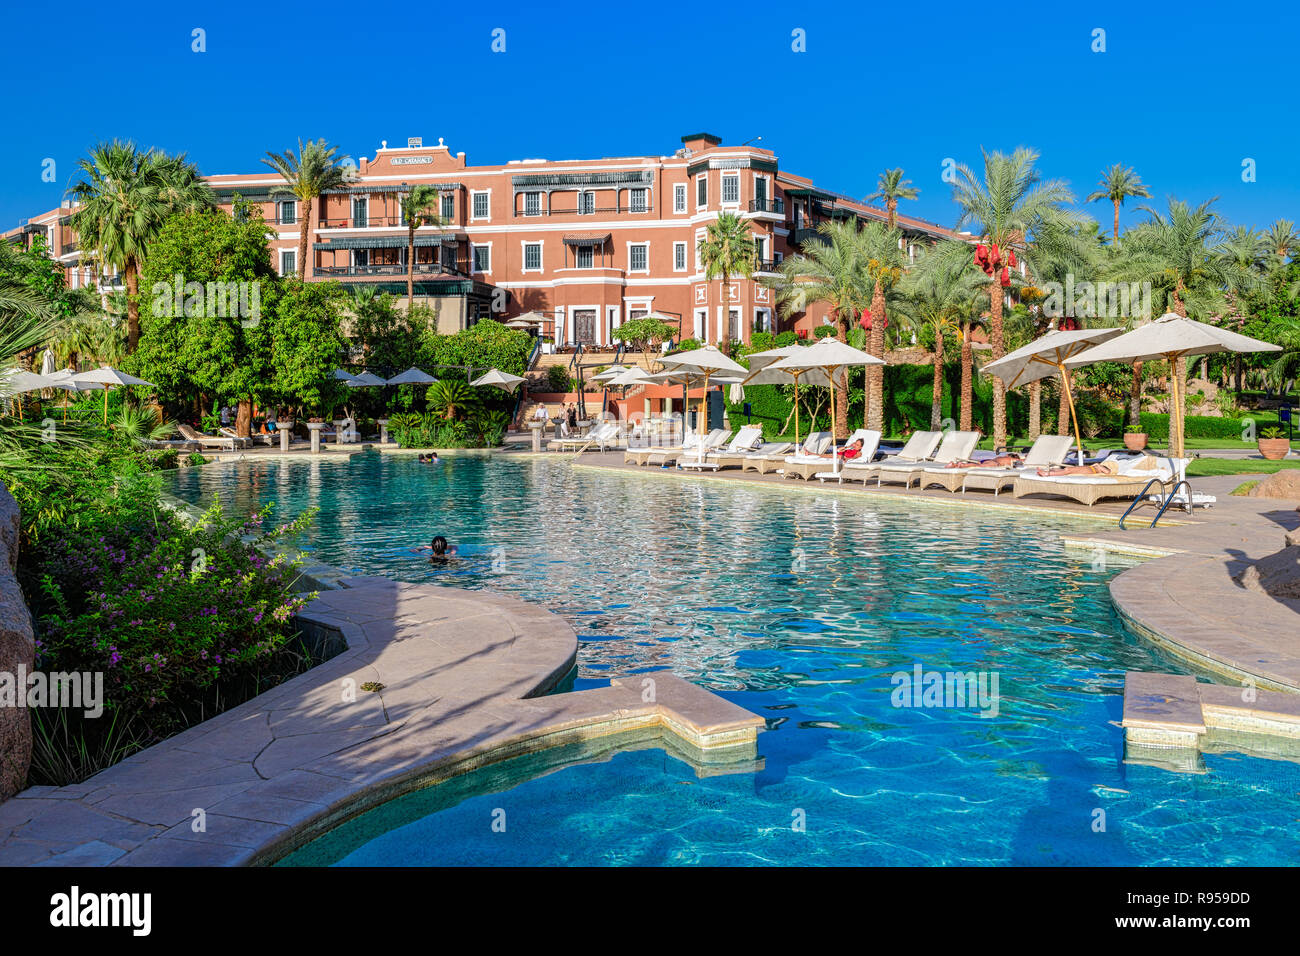 Old Cataract Hotel Is A Historic British Colonial Era 5 Star Luxury Resort Hotel Located On The Banks Of The River Nile In Aswan Egypt Stock Photo Alamy